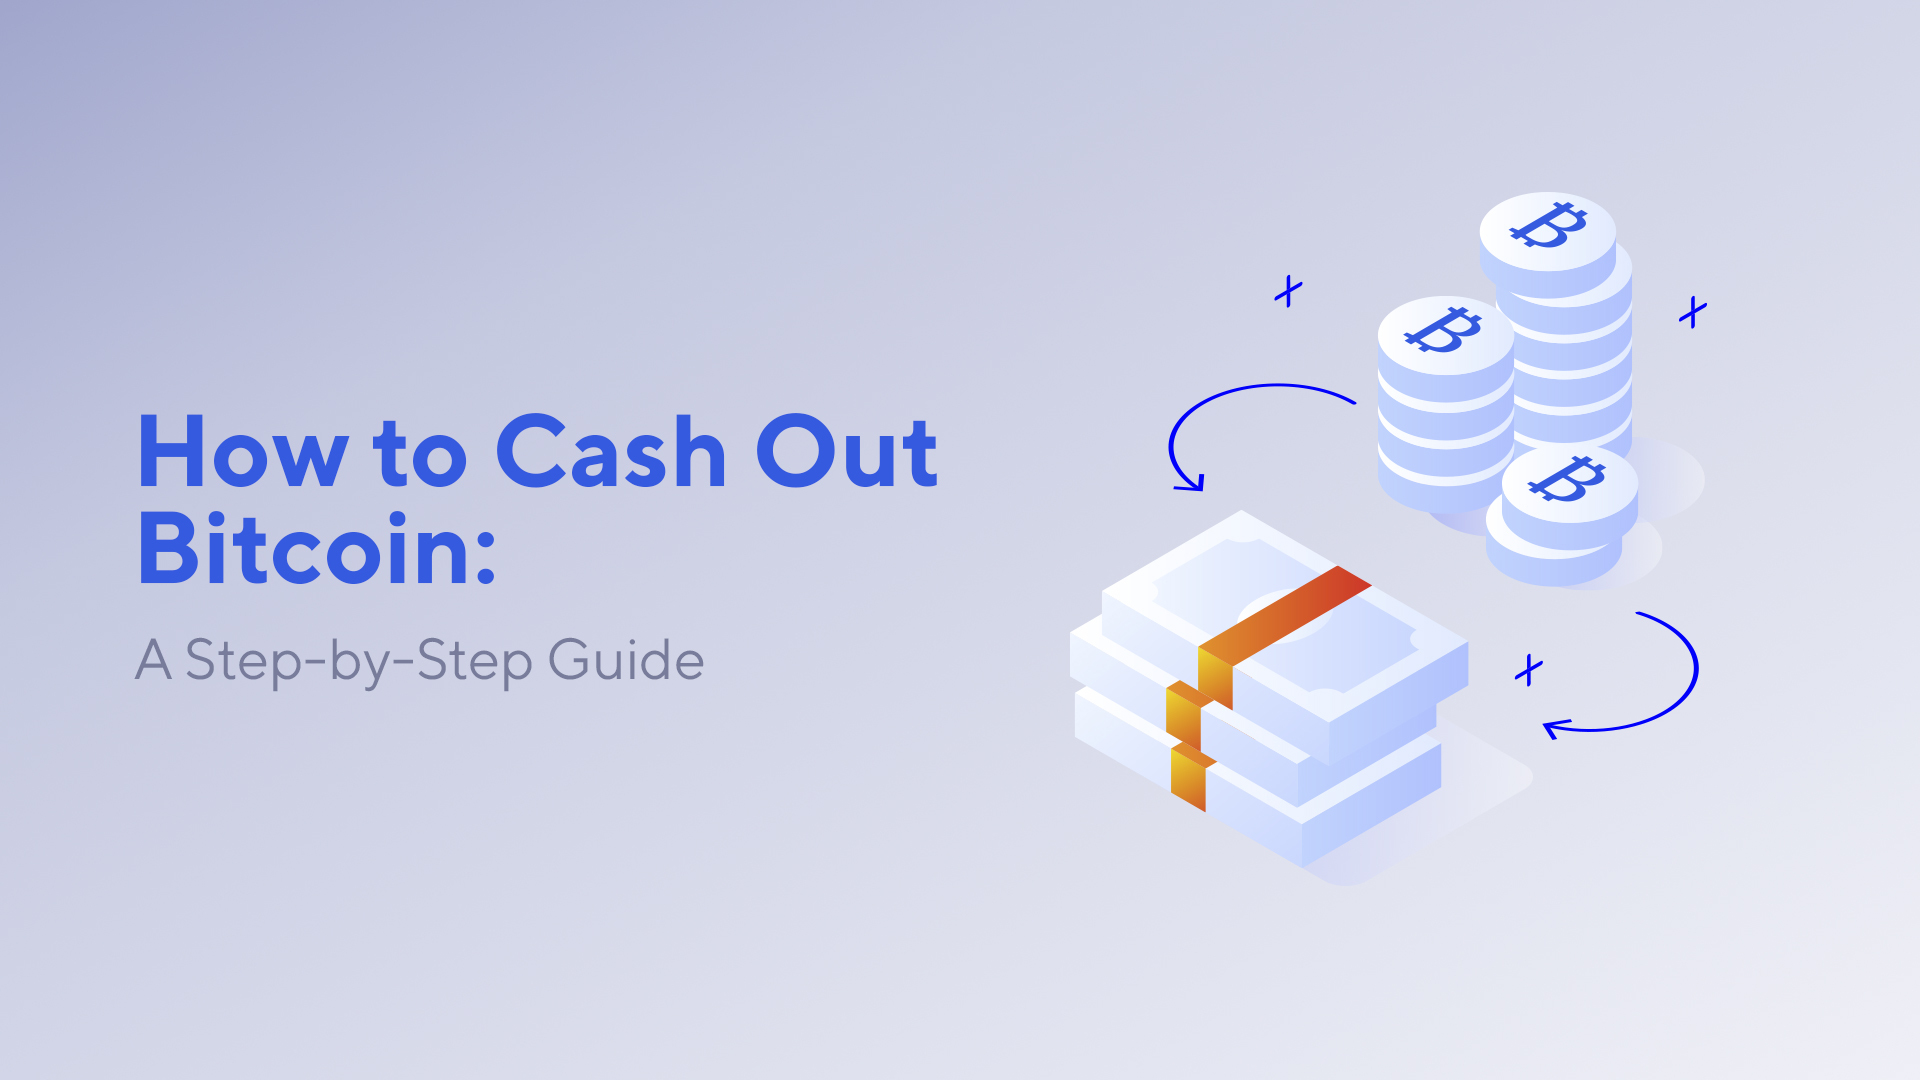 How to Cash Out Bitcoin: A Step-by-Step Guide